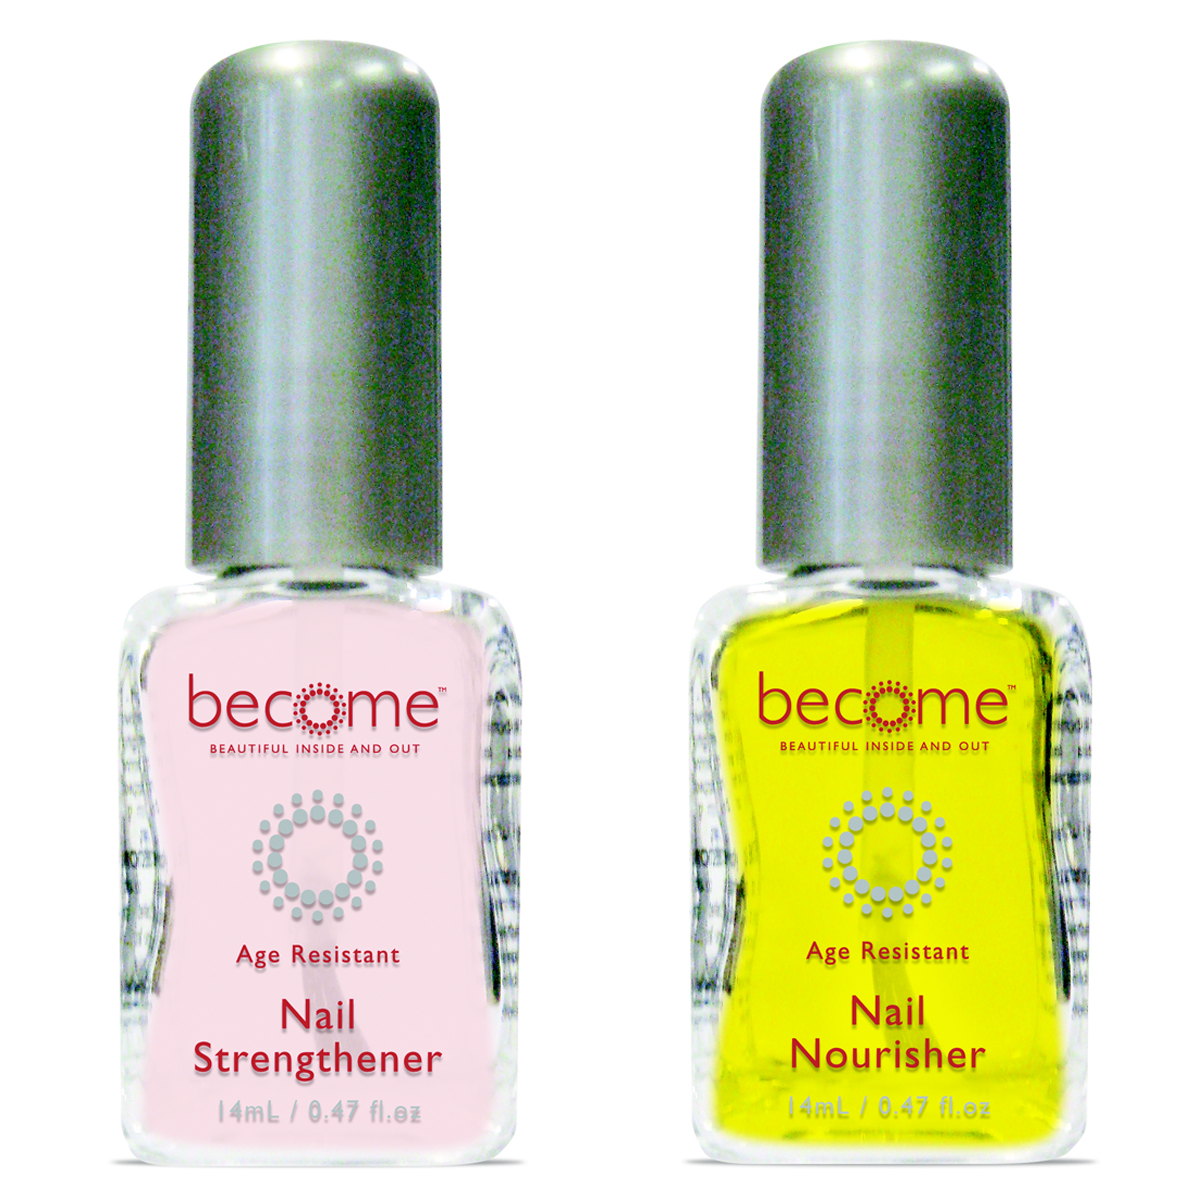 Pro Strong Nail Strengthener: Berry Dark Shades